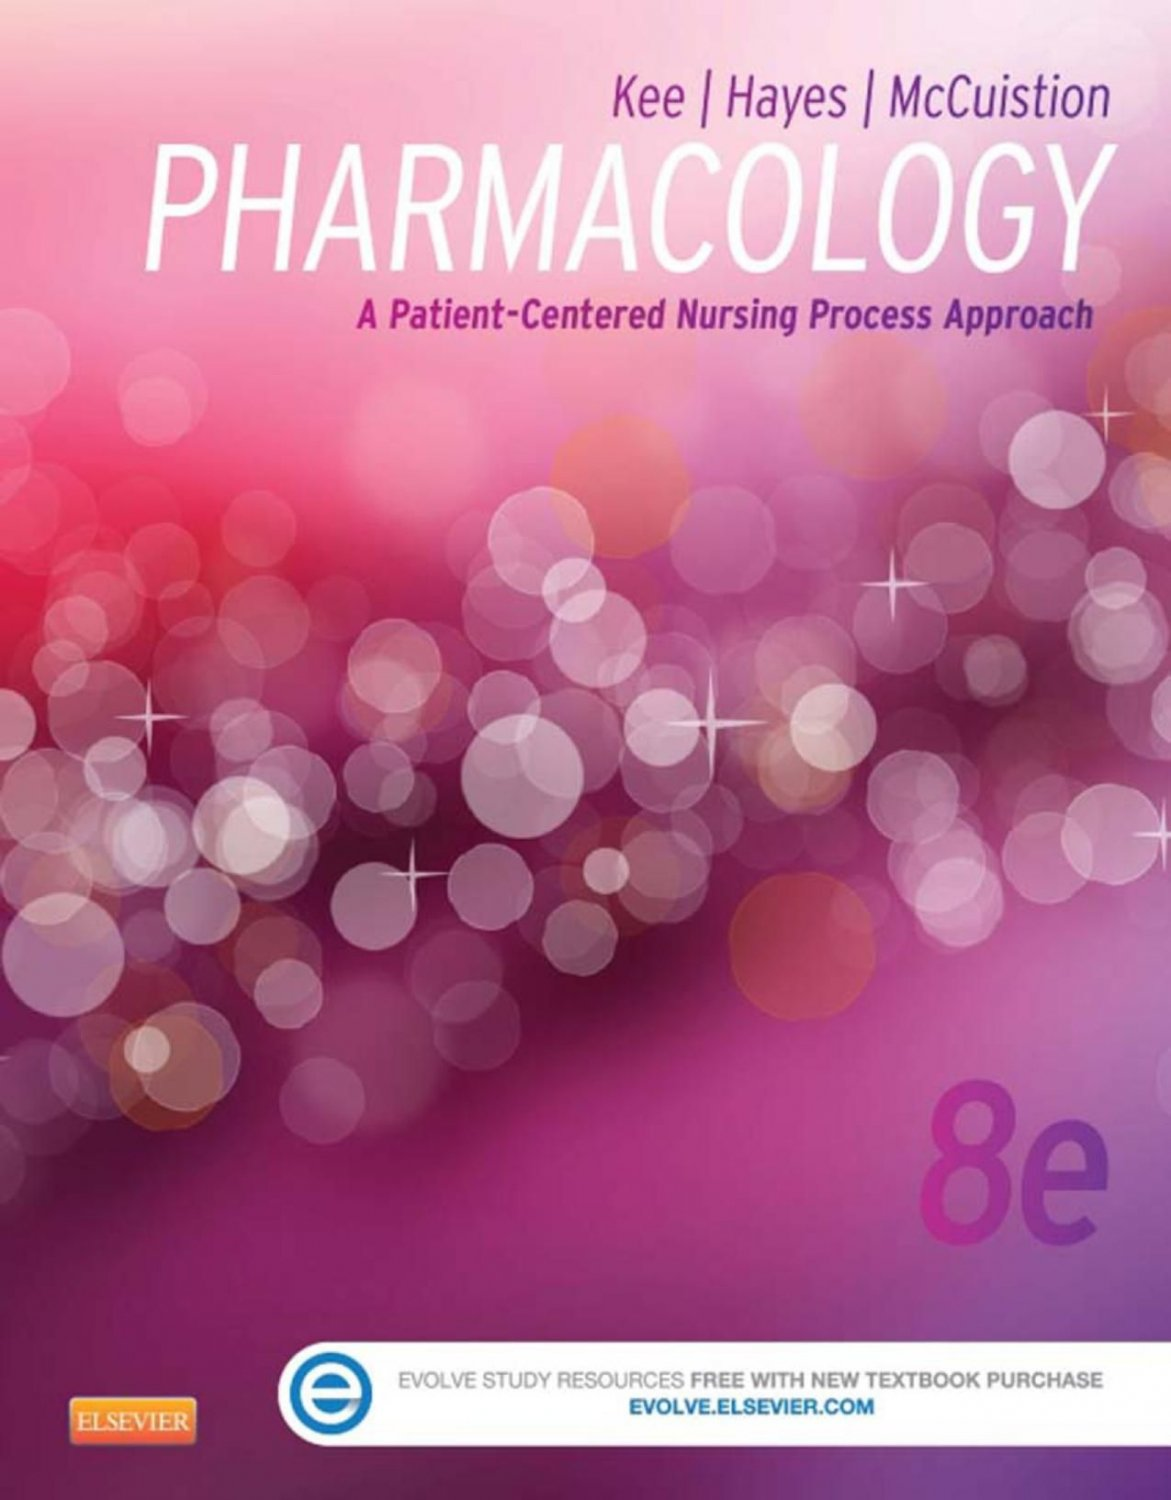 Pharmacology, 8th Edition(e-Textbook)